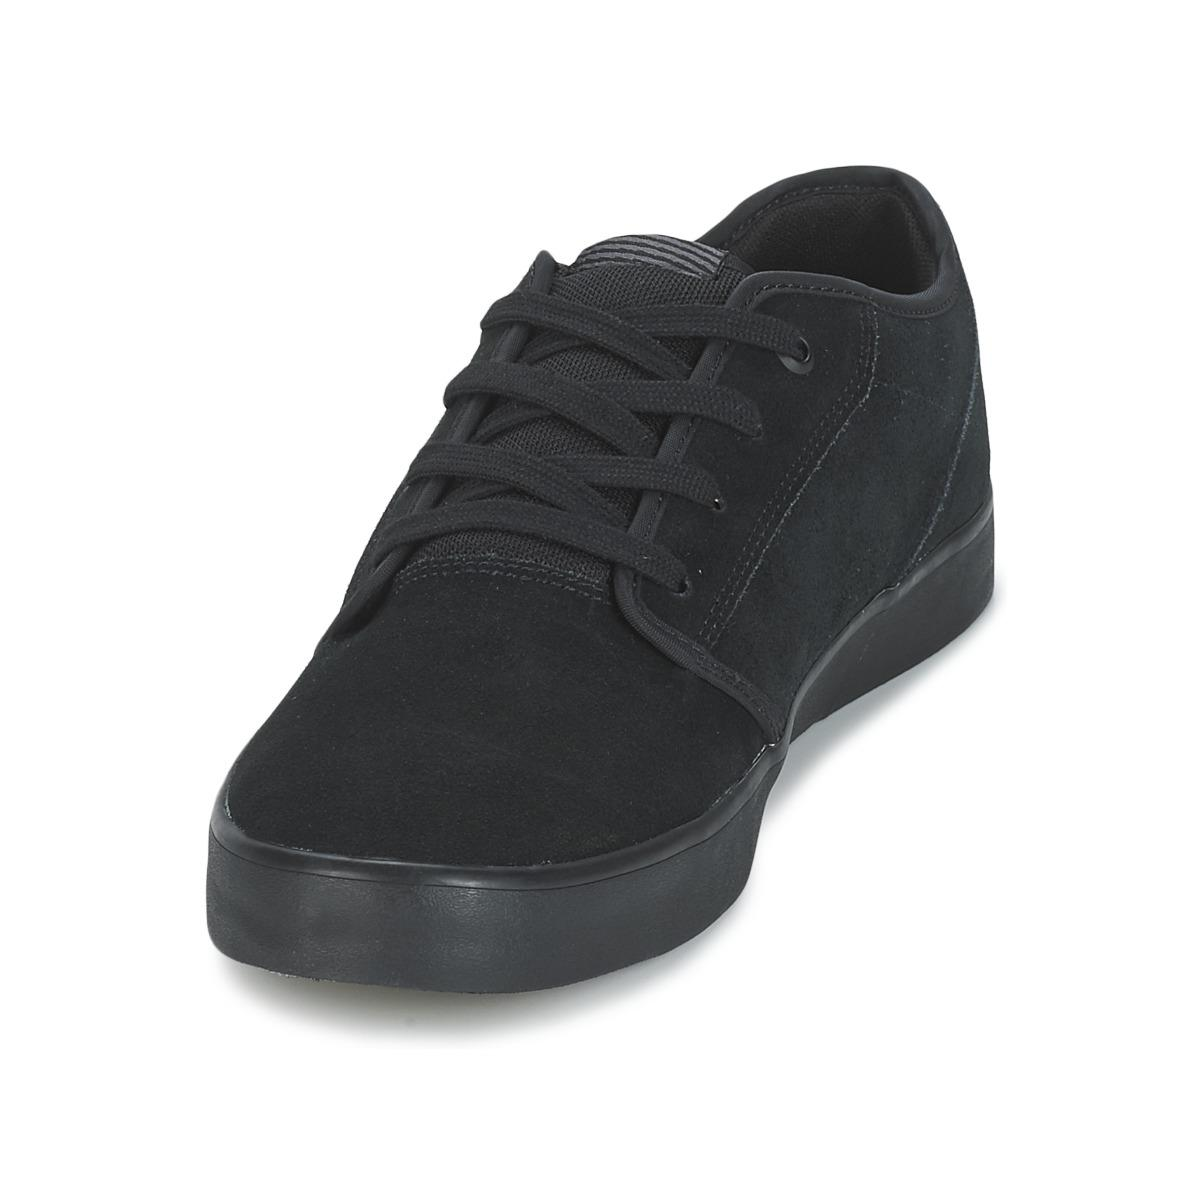 Volcom Grimm 2 Shoes (trainers) in Black for Men